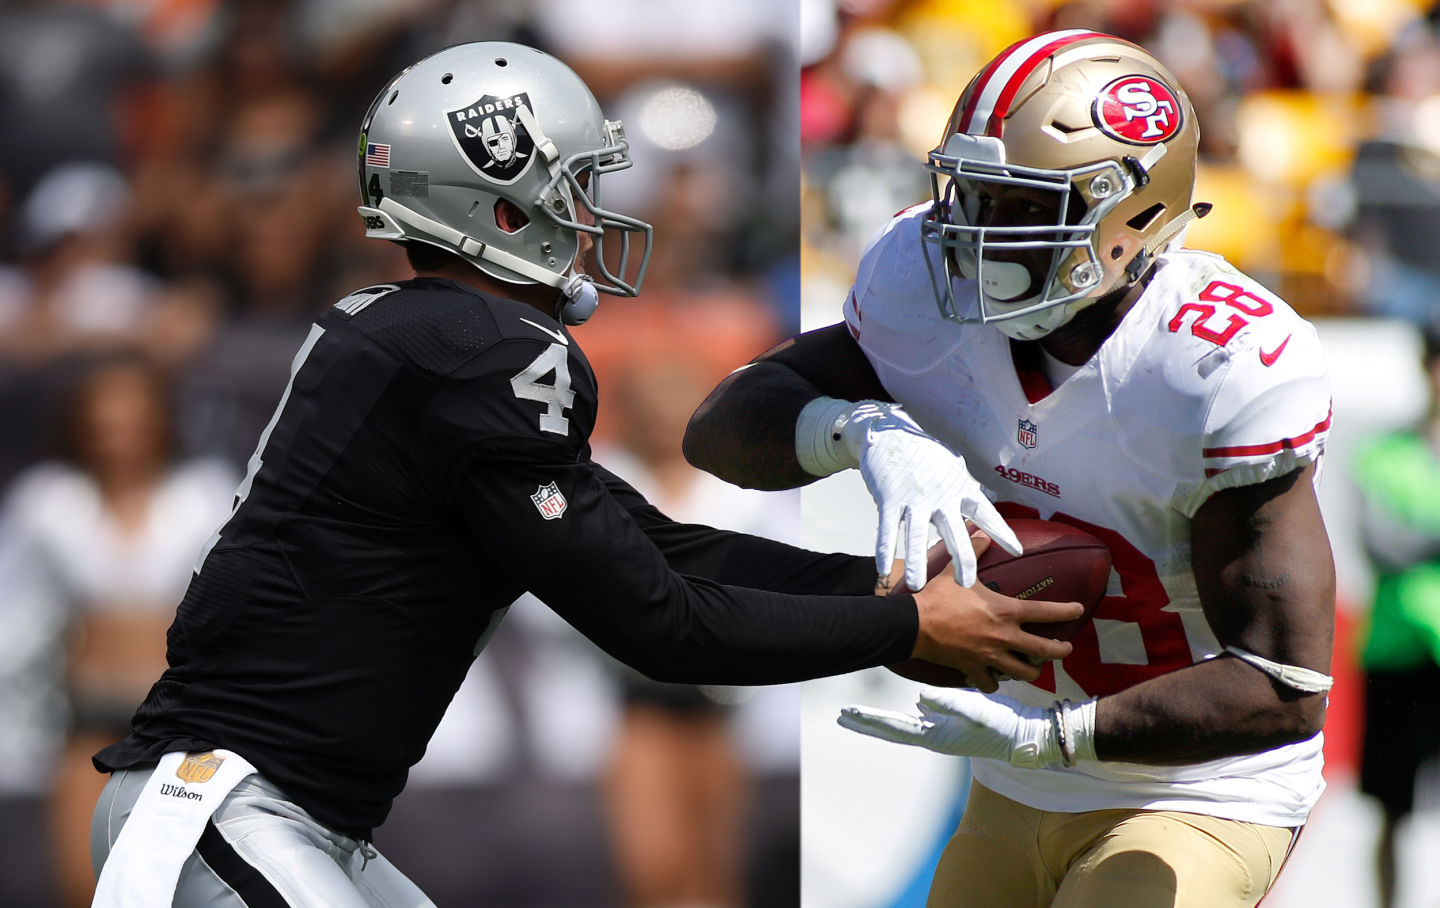 The 49ers struggled through a rough year while the Raiders look to be on the way back. (Getty Images, composite by Adam Grossberg)